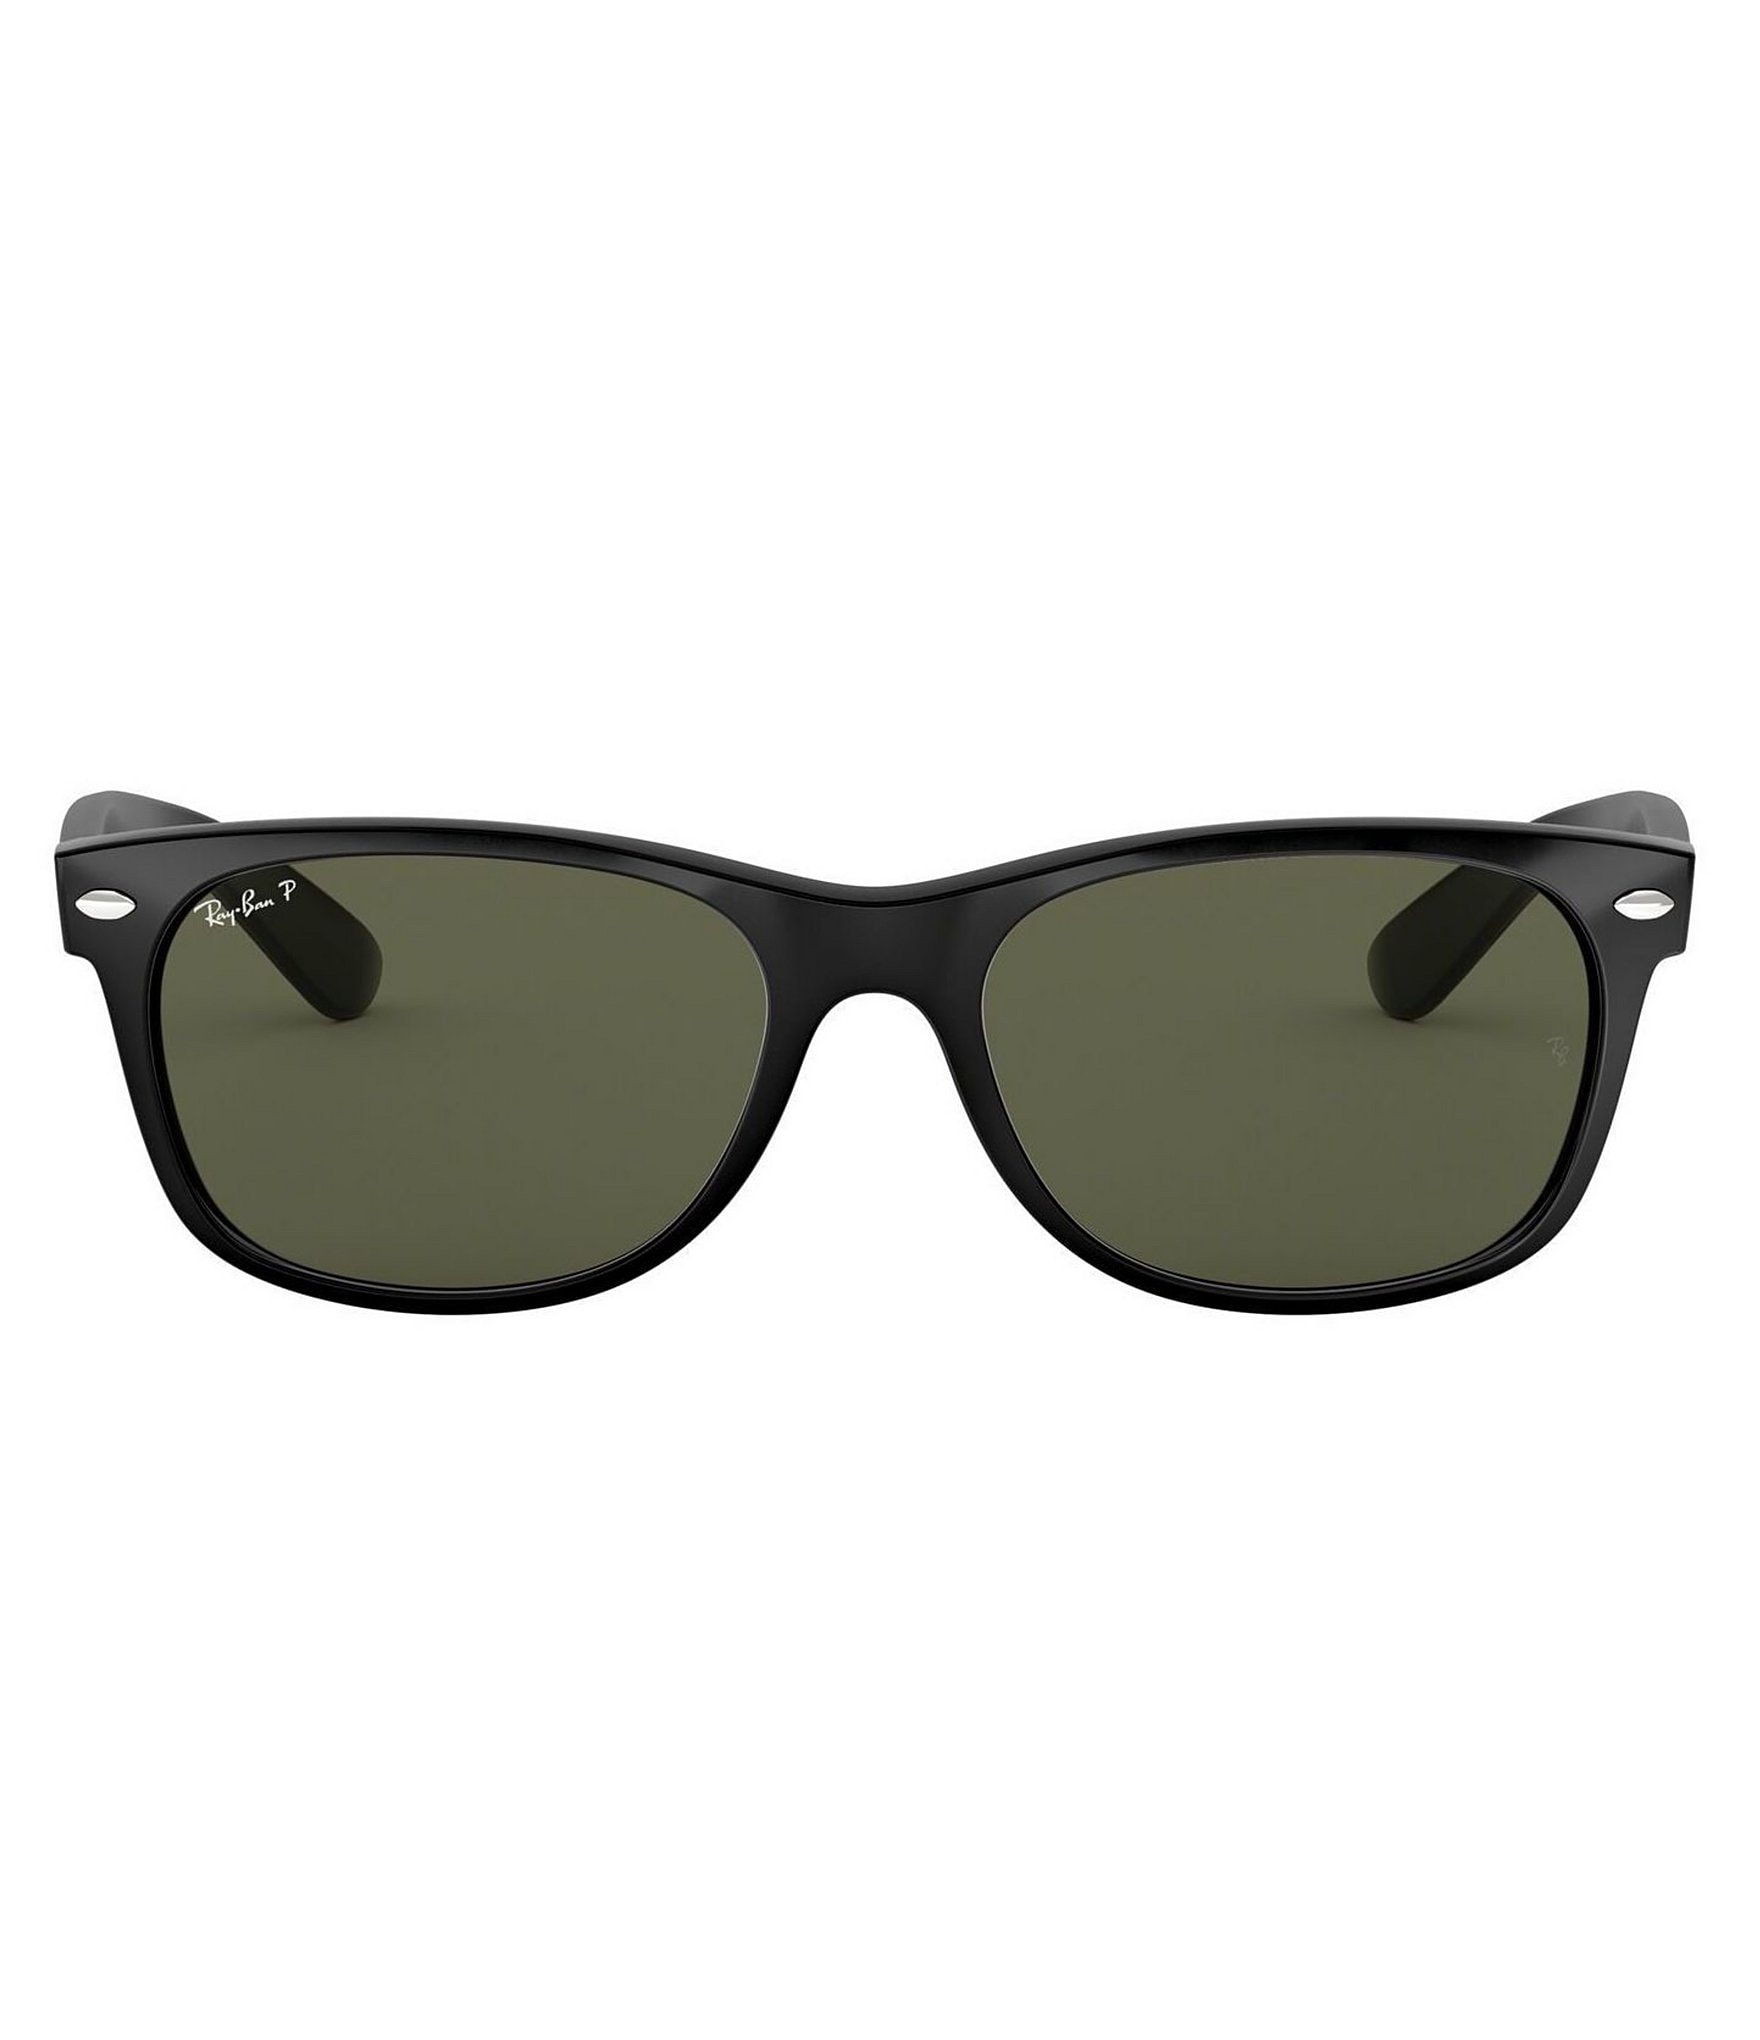 ray ban new wayfarer polarized sunglasses dillards. Black Bedroom Furniture Sets. Home Design Ideas